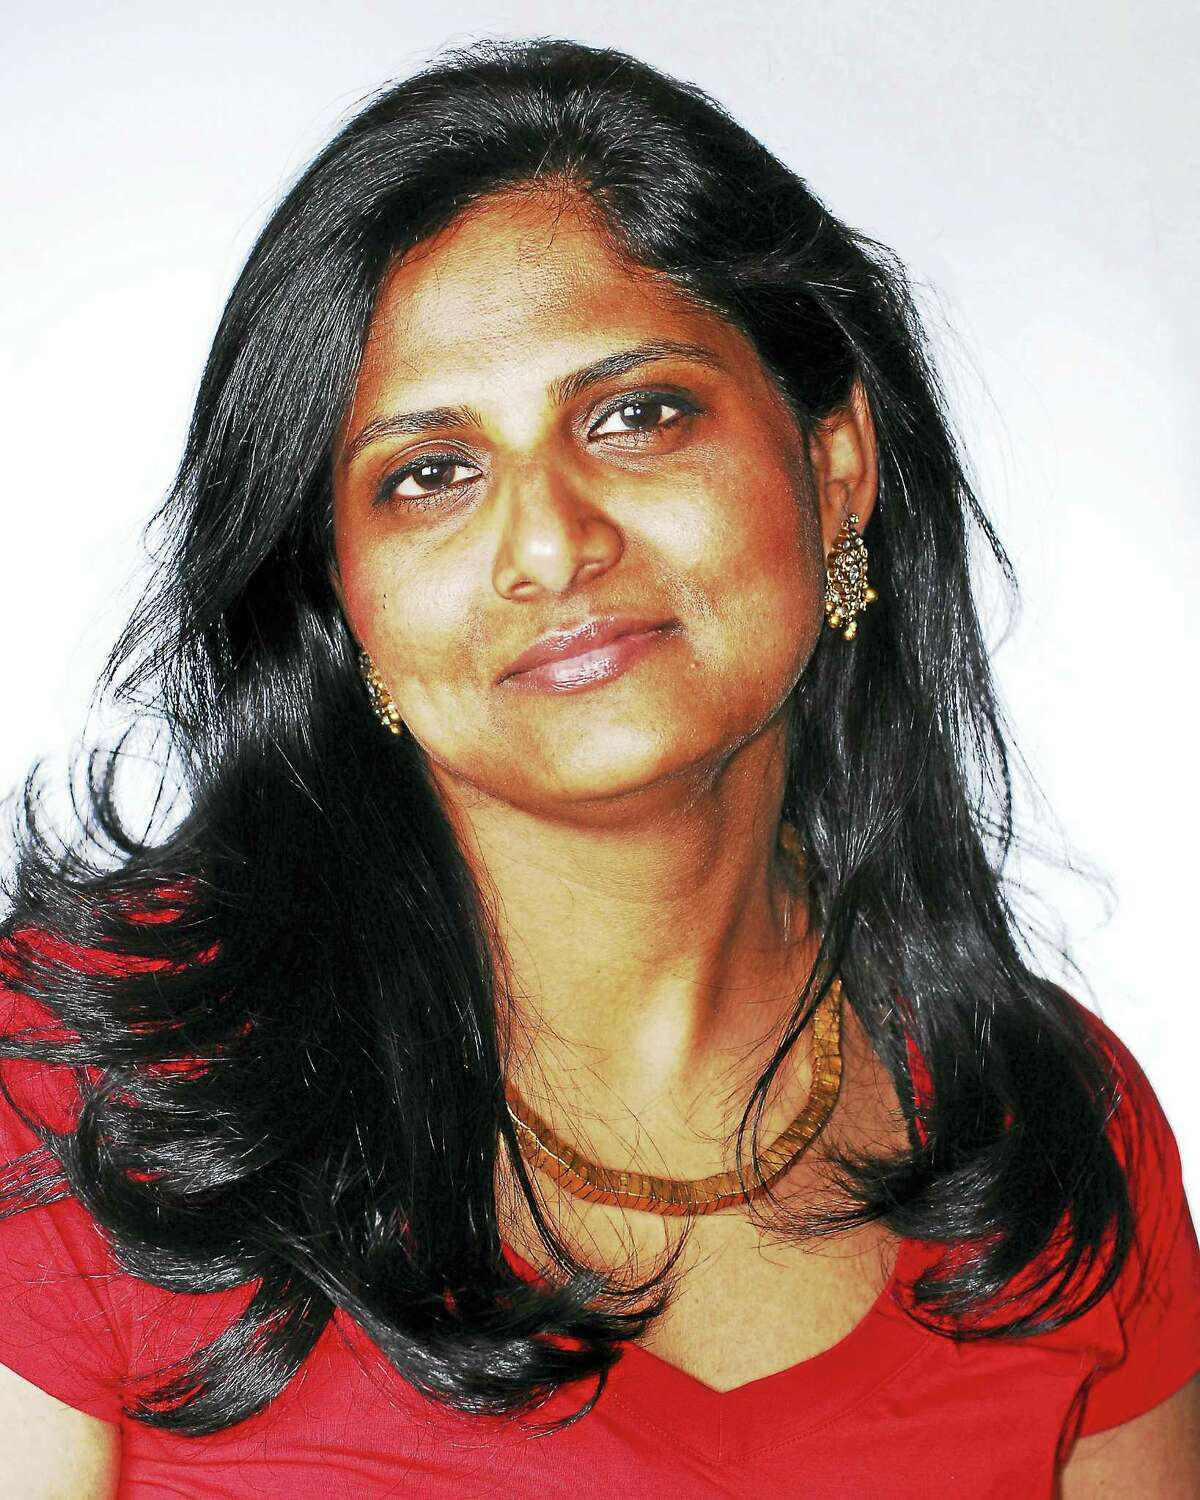 WNPR's Making Her Story series at the Warner Theatre continues on Aug. 8 at 7 p.m. with Priyamvada Natarajan, professor of astronomy and physics at Yale University.